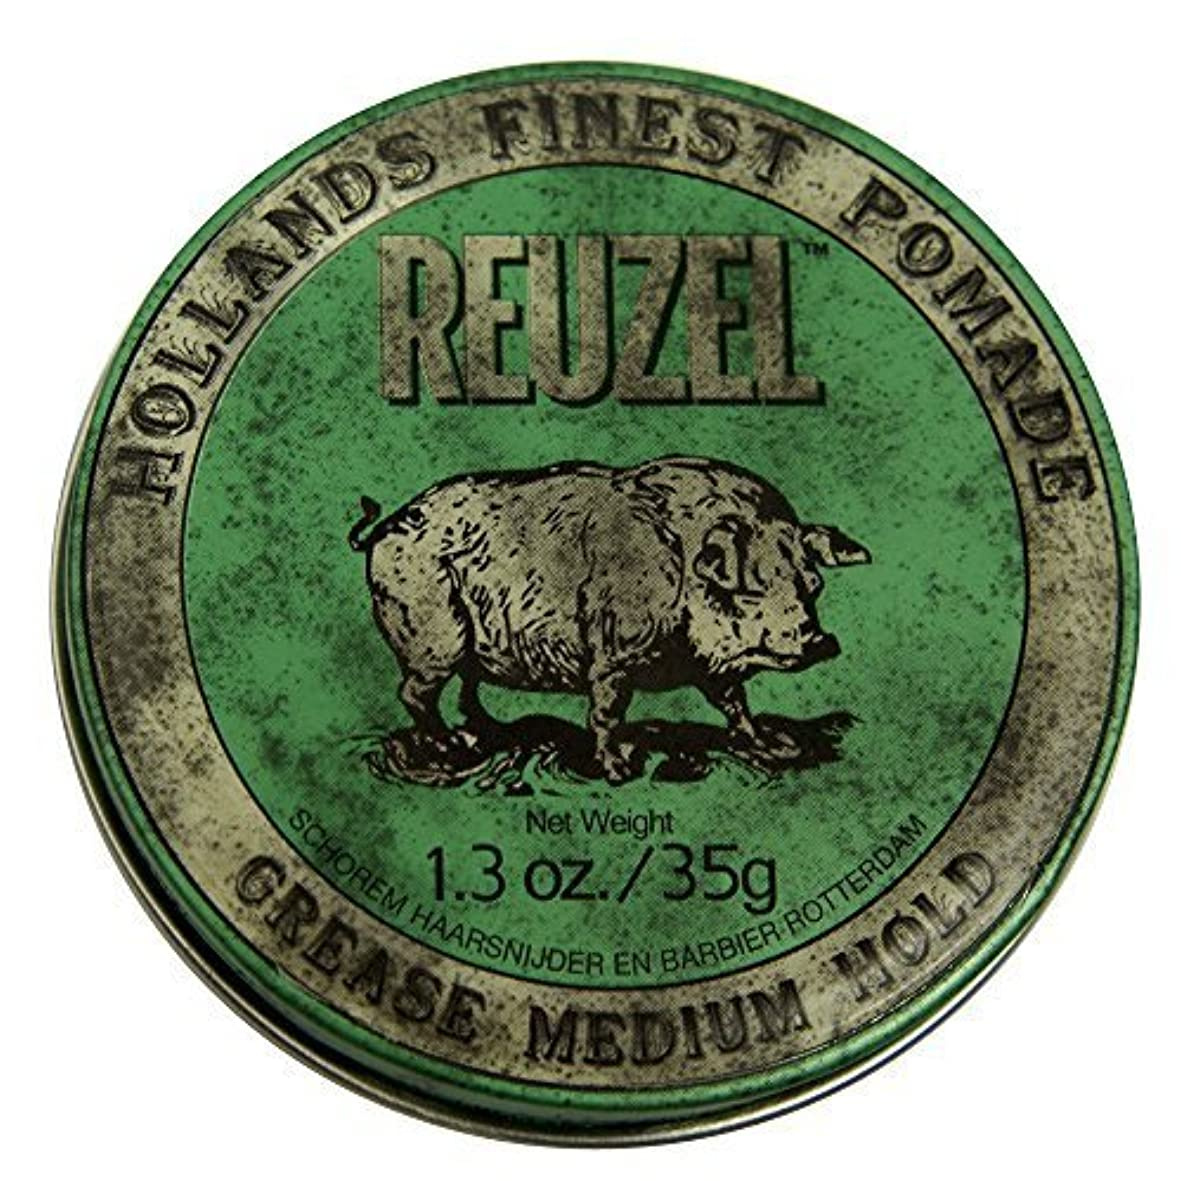 ハンバーガーノミネートアノイby Reuzel Reuzel Green Grease Medium Hold Hair Styling Pomade Piglet 1.3oz (35g) Wax/Gel [並行輸入品]